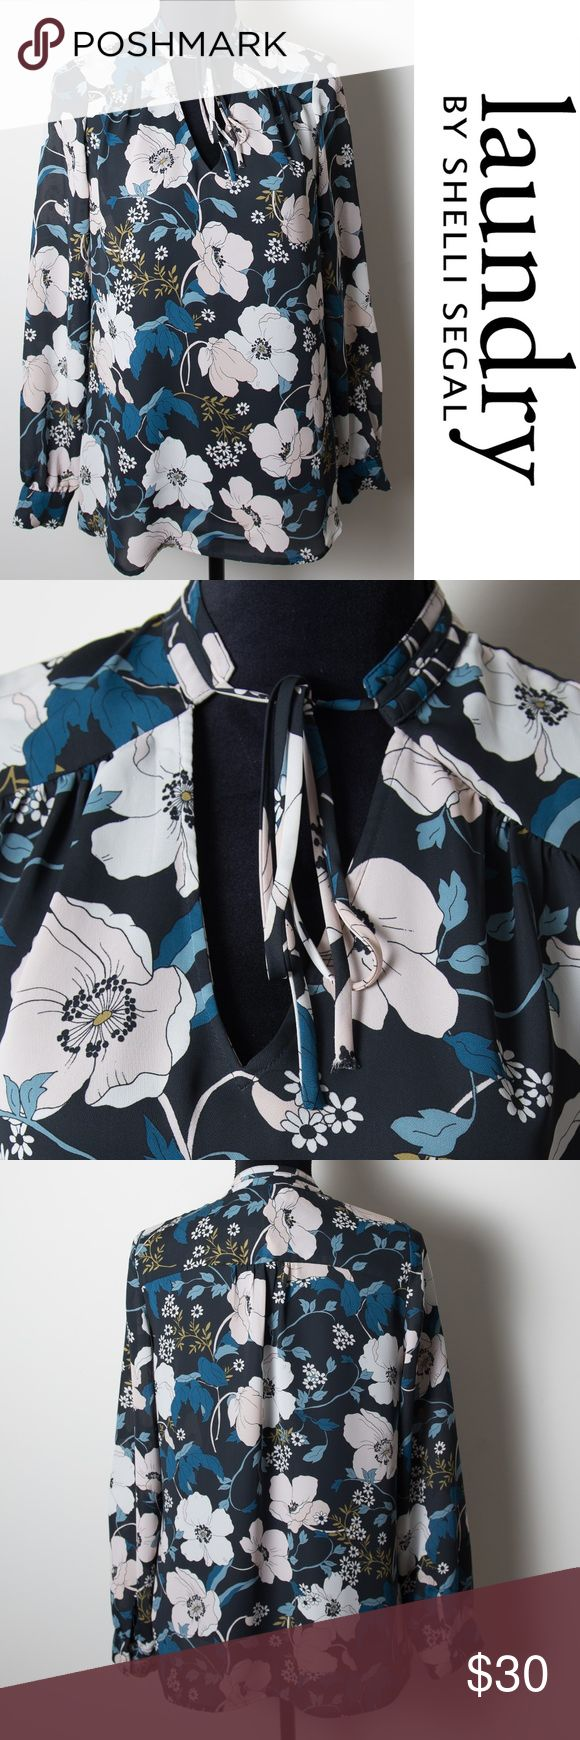 Laundry Shelli Segal Floral Front Tie Shirt Tunic Size 8 long sleeve blouse from Laundry Shelli Segal. Size 8. Flouncy tie trims the v-neck of this lightweight top covered in a floral pattern. Black with white, soft pink, shades of blue and green. Button cuffs. Good preloved condition. No noticeable holes, stains or rips. Laundry By Shelli Segal Tops Tunics